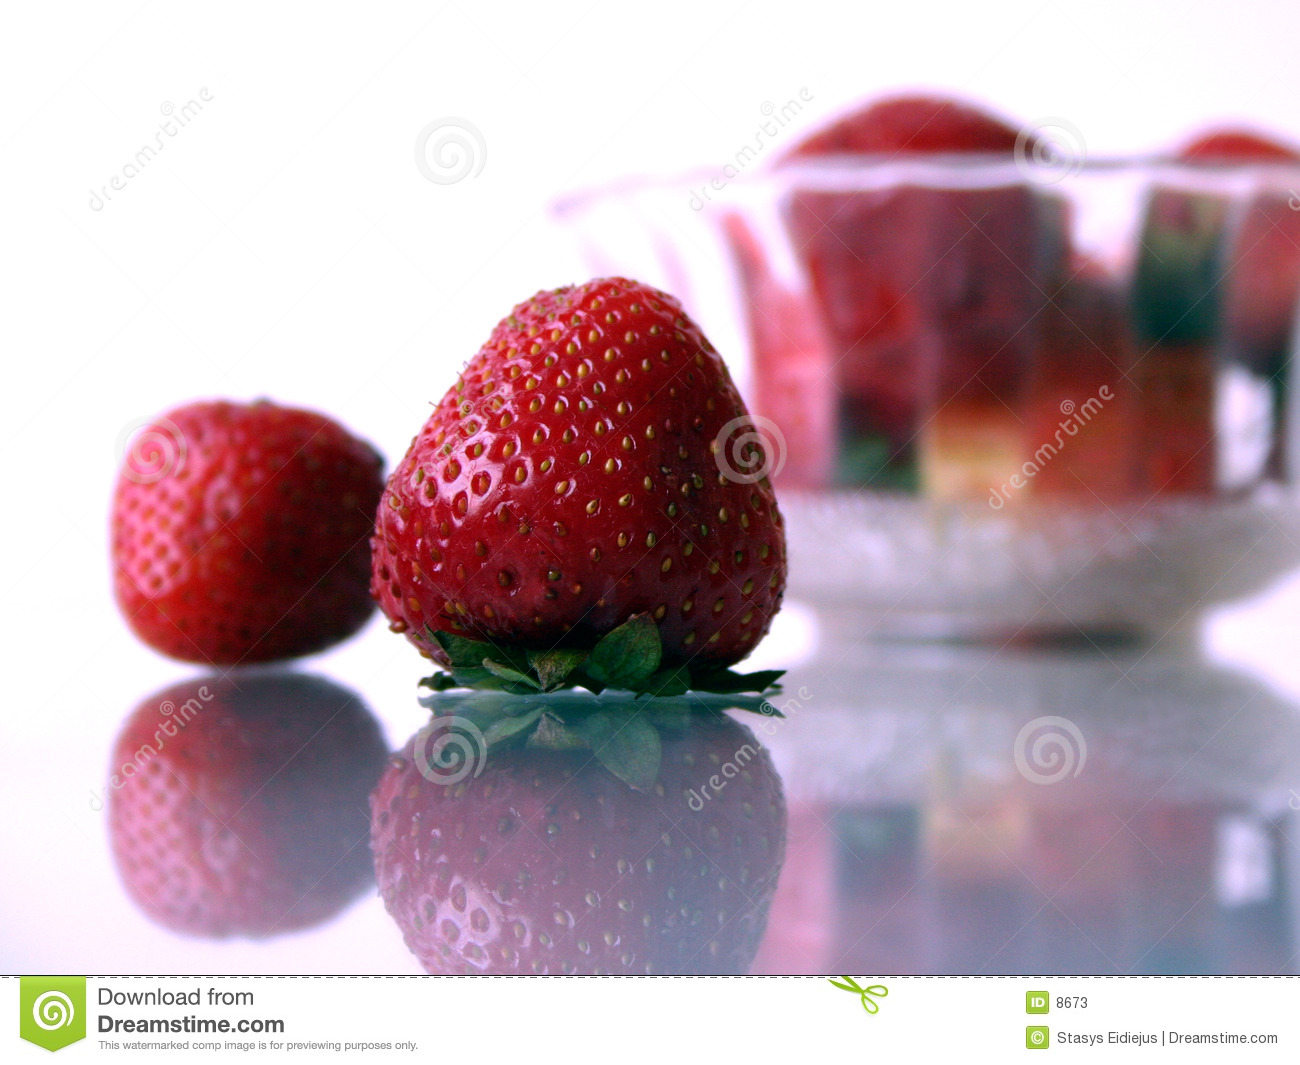 Strawberries III